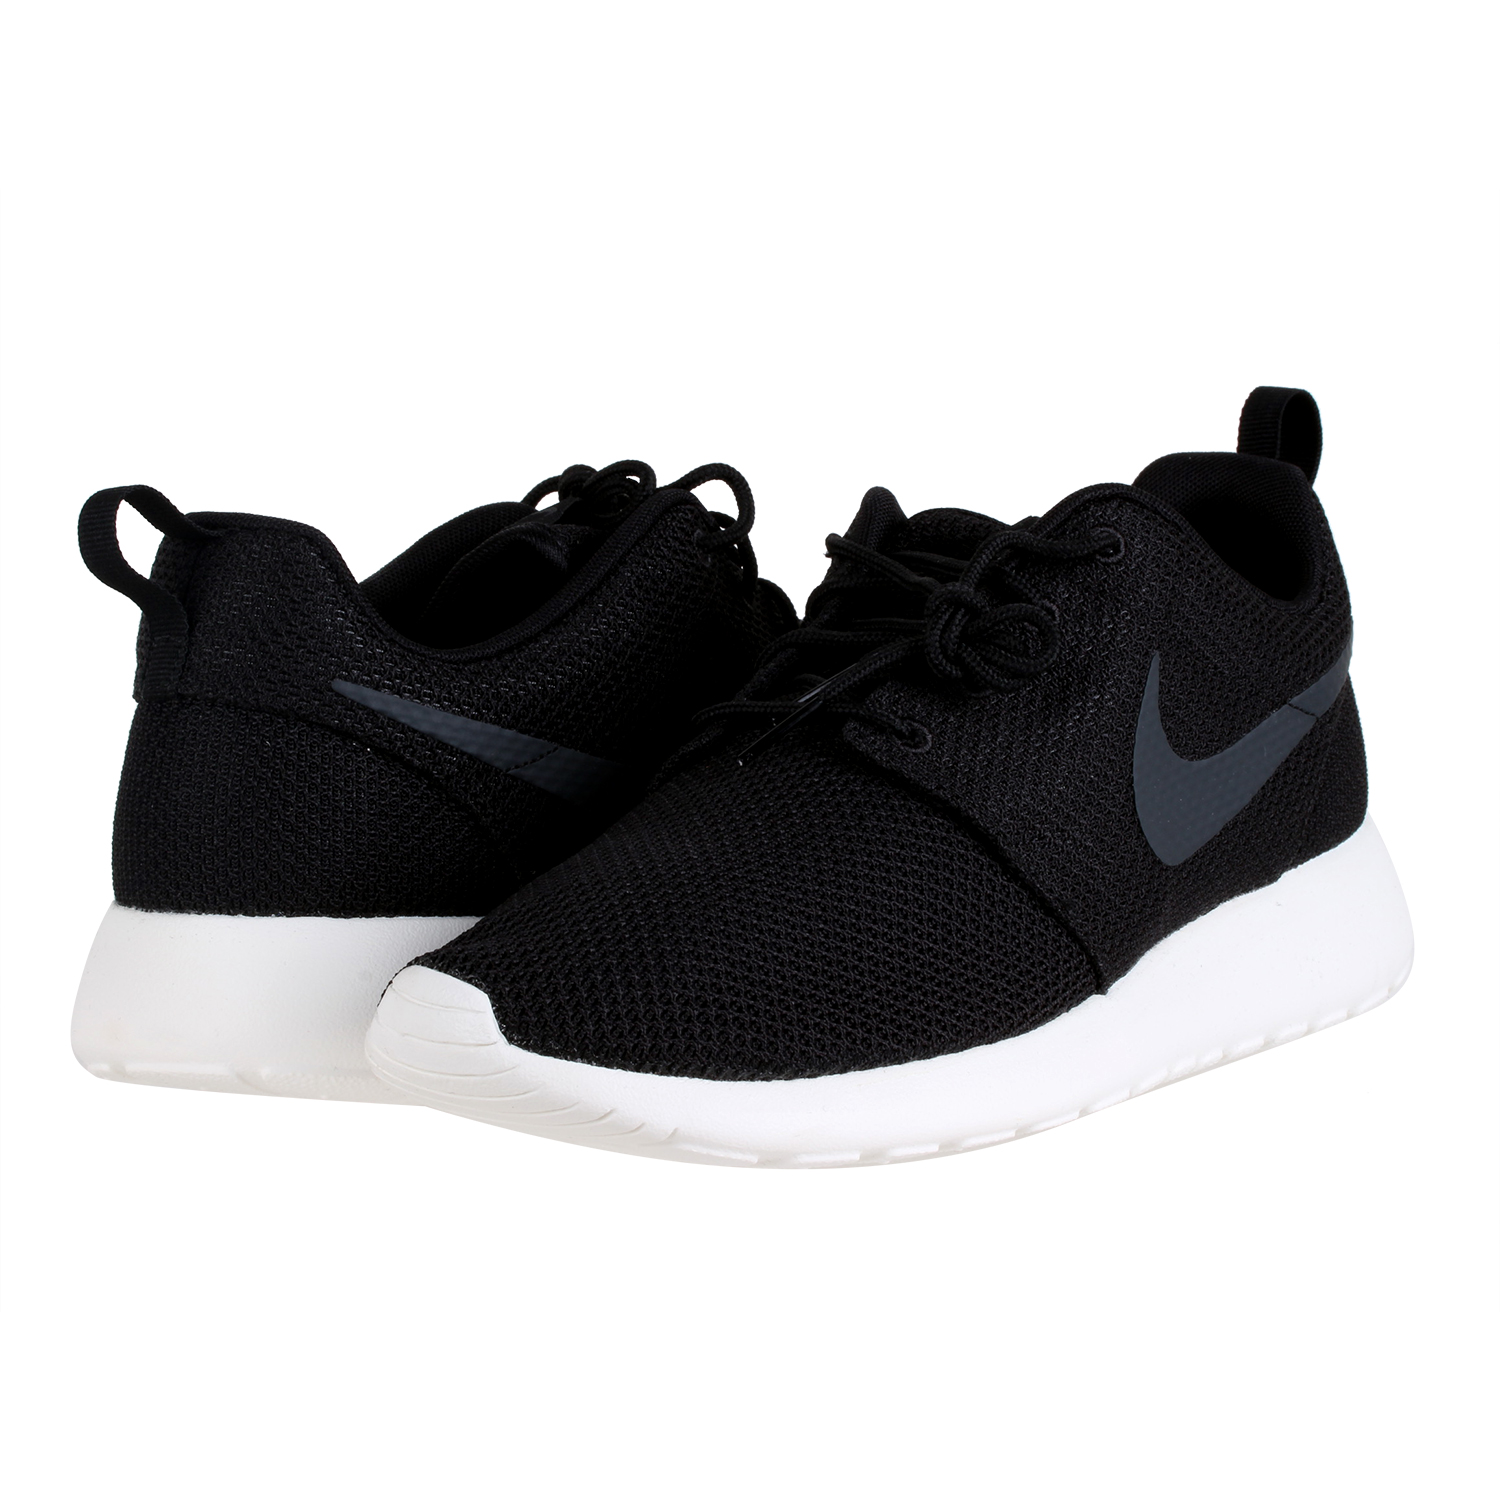 on sale 219cc 9d859 Details about Nike Men s Roshe One Running shoes 511881-010 Black  Sail Anthracite